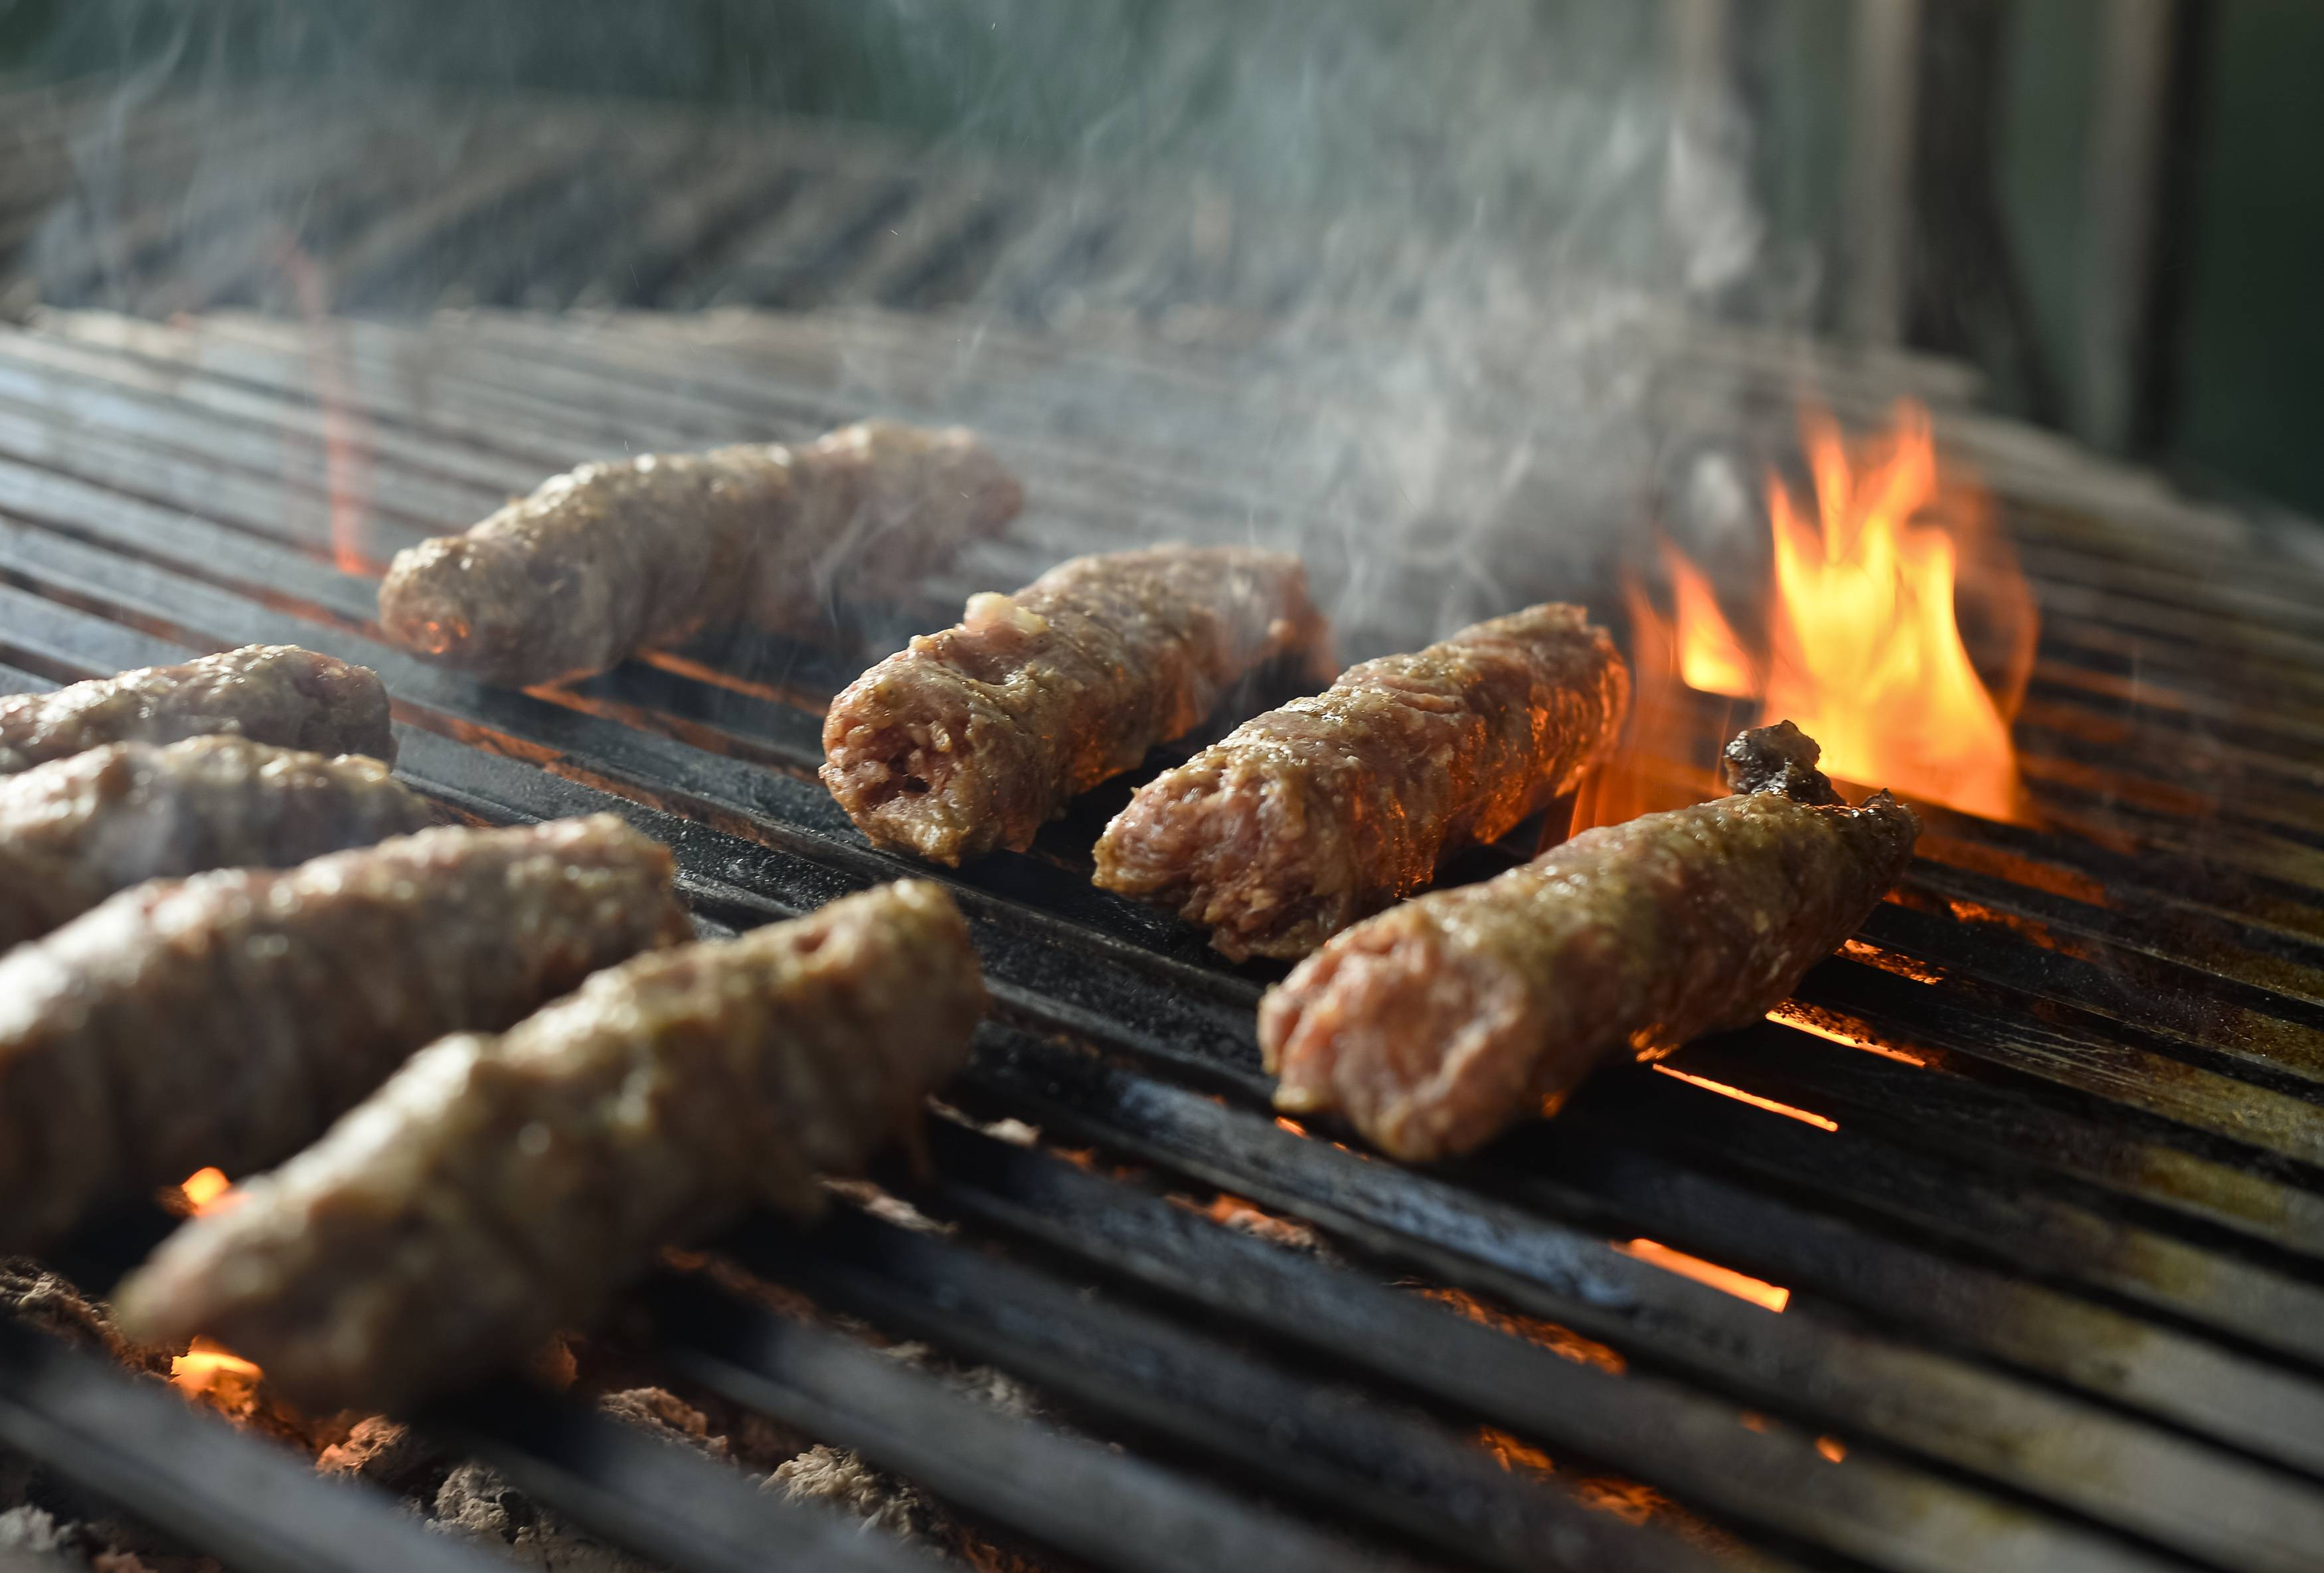 """Mici,"" the Romanian version of a Turkish dish, spicy grilled sausages, popular across the Balkans, are grilled in a restaurant in Bucharest, Romania. Officials in Brussels have agreed that spicy ""mici"", grilled meat bullet shaped delicacies which rely on a pinch of bicarbonate of soda for their distinctive succulent flavor and puffy texture will be permitted under European Union rules, the Romanian Meat Association says."